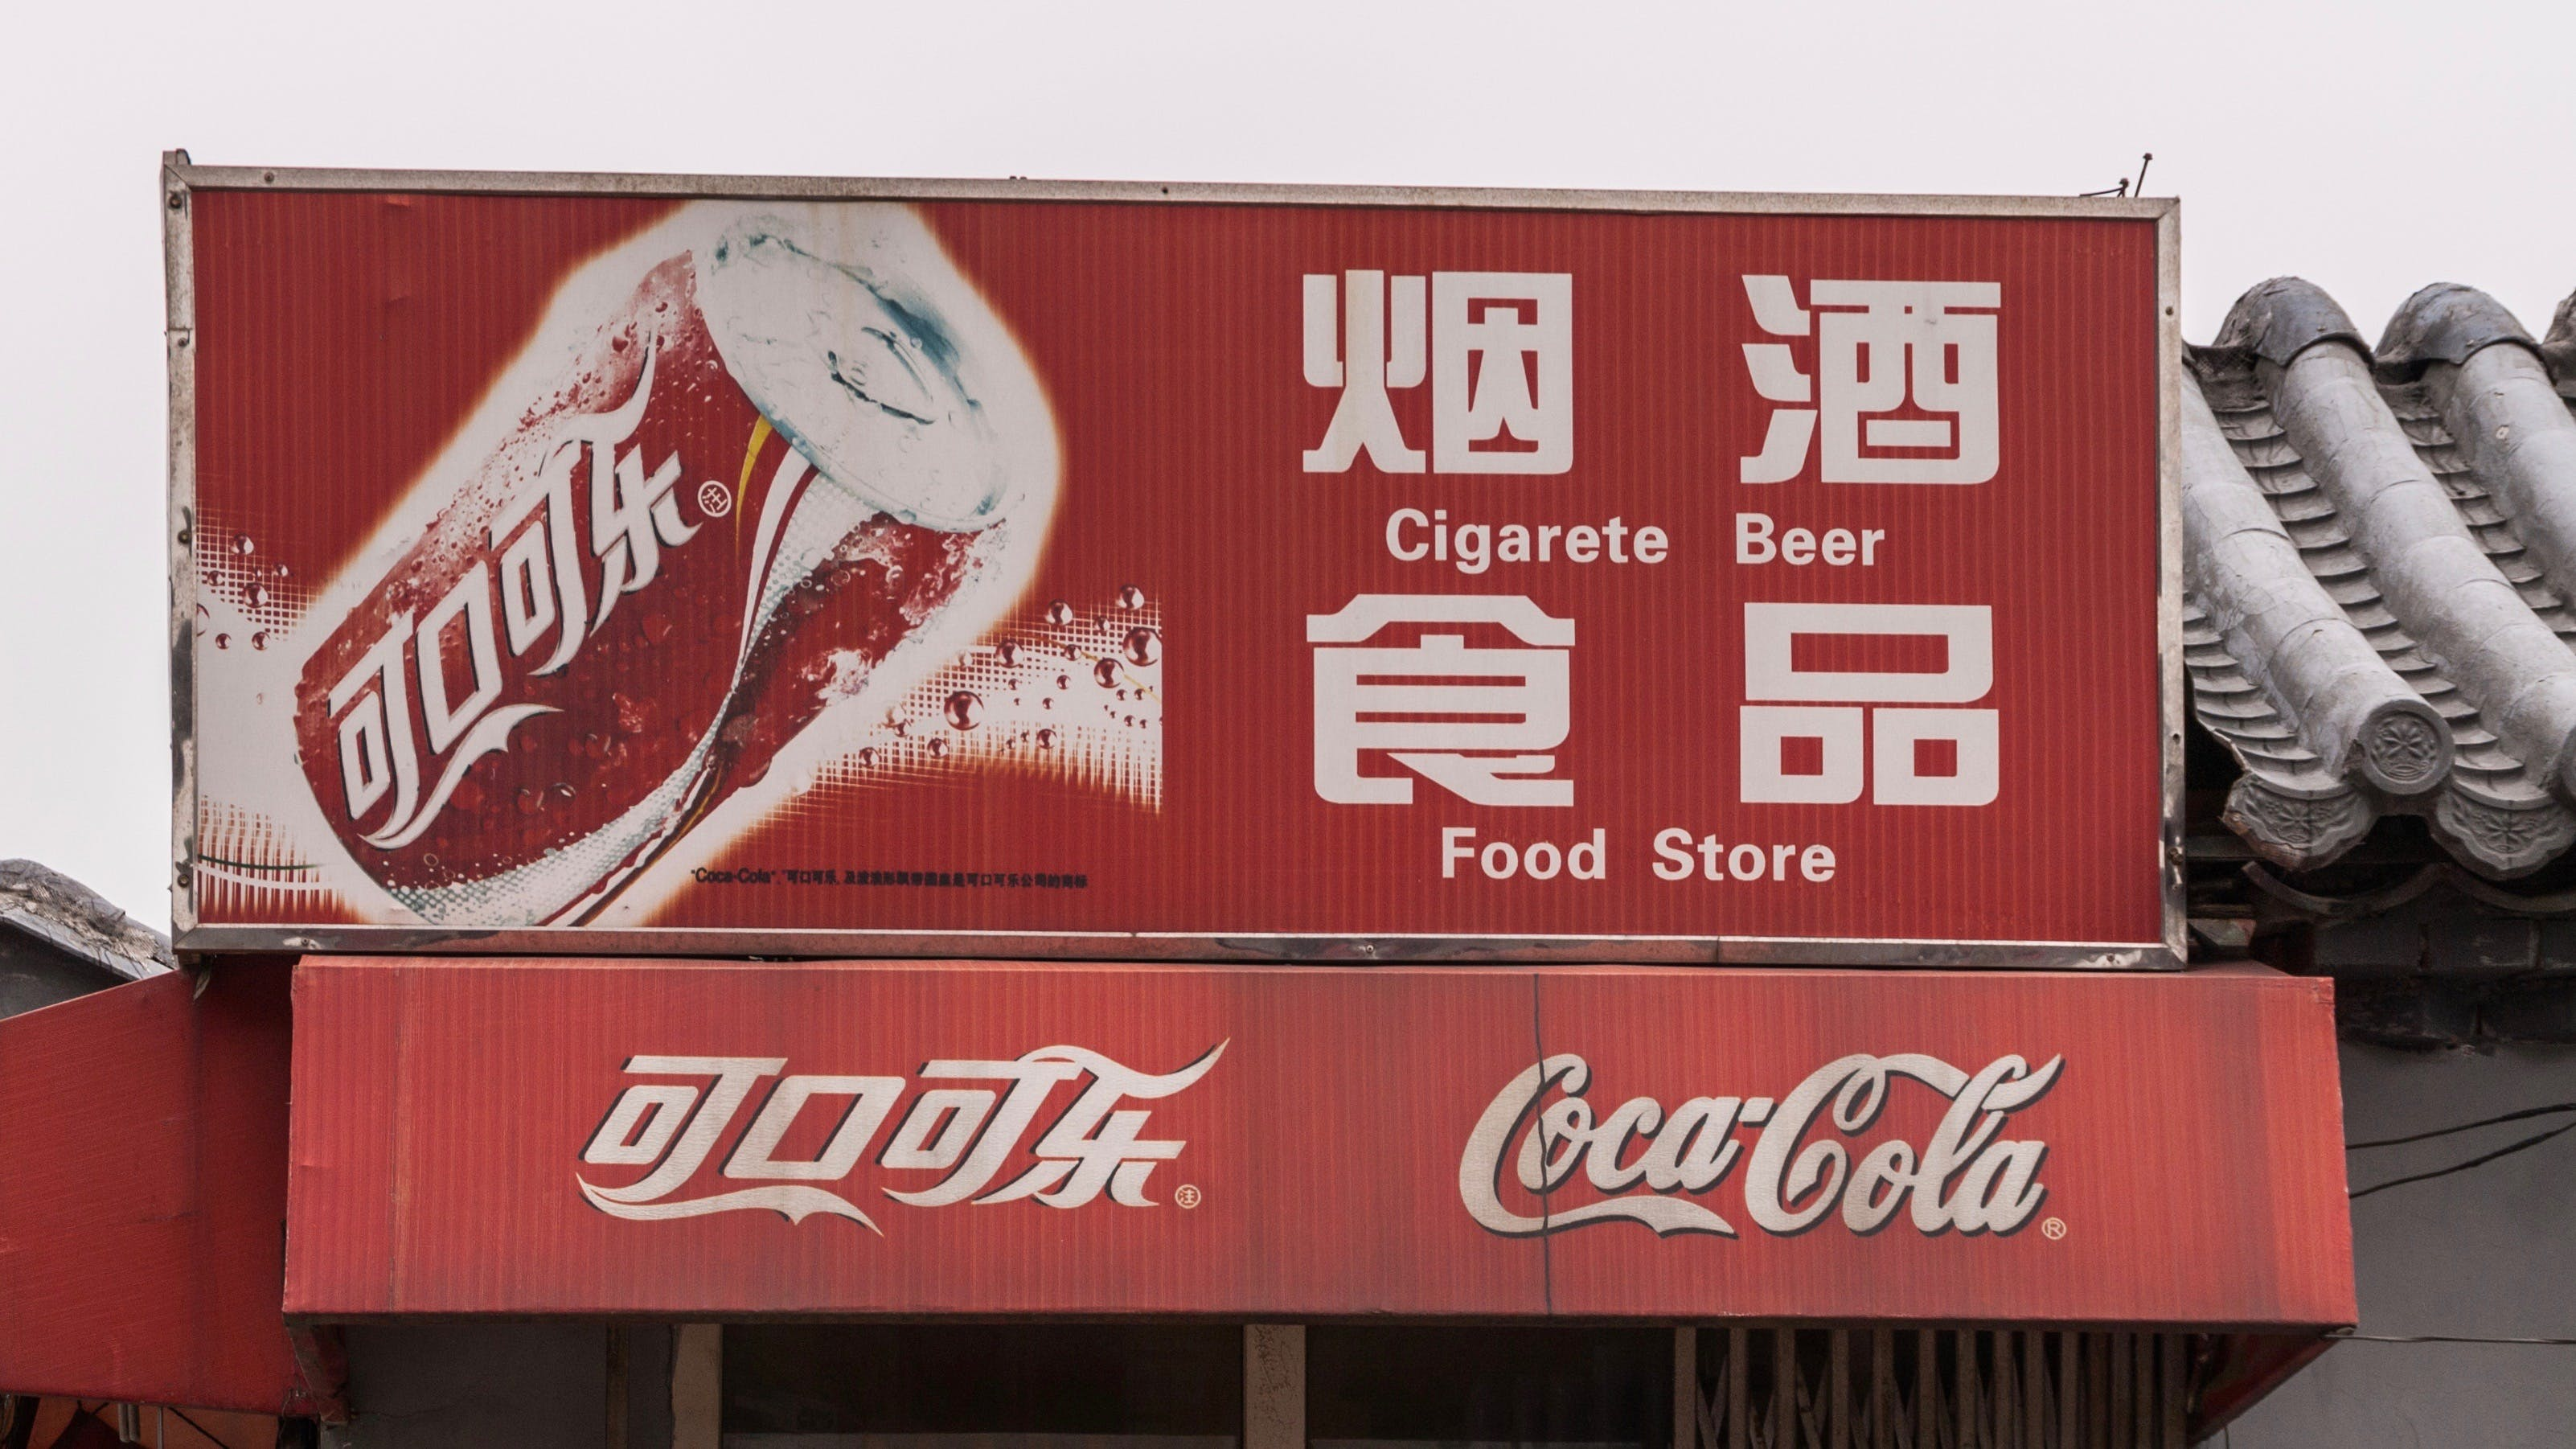 Big Food pushes exercise in China